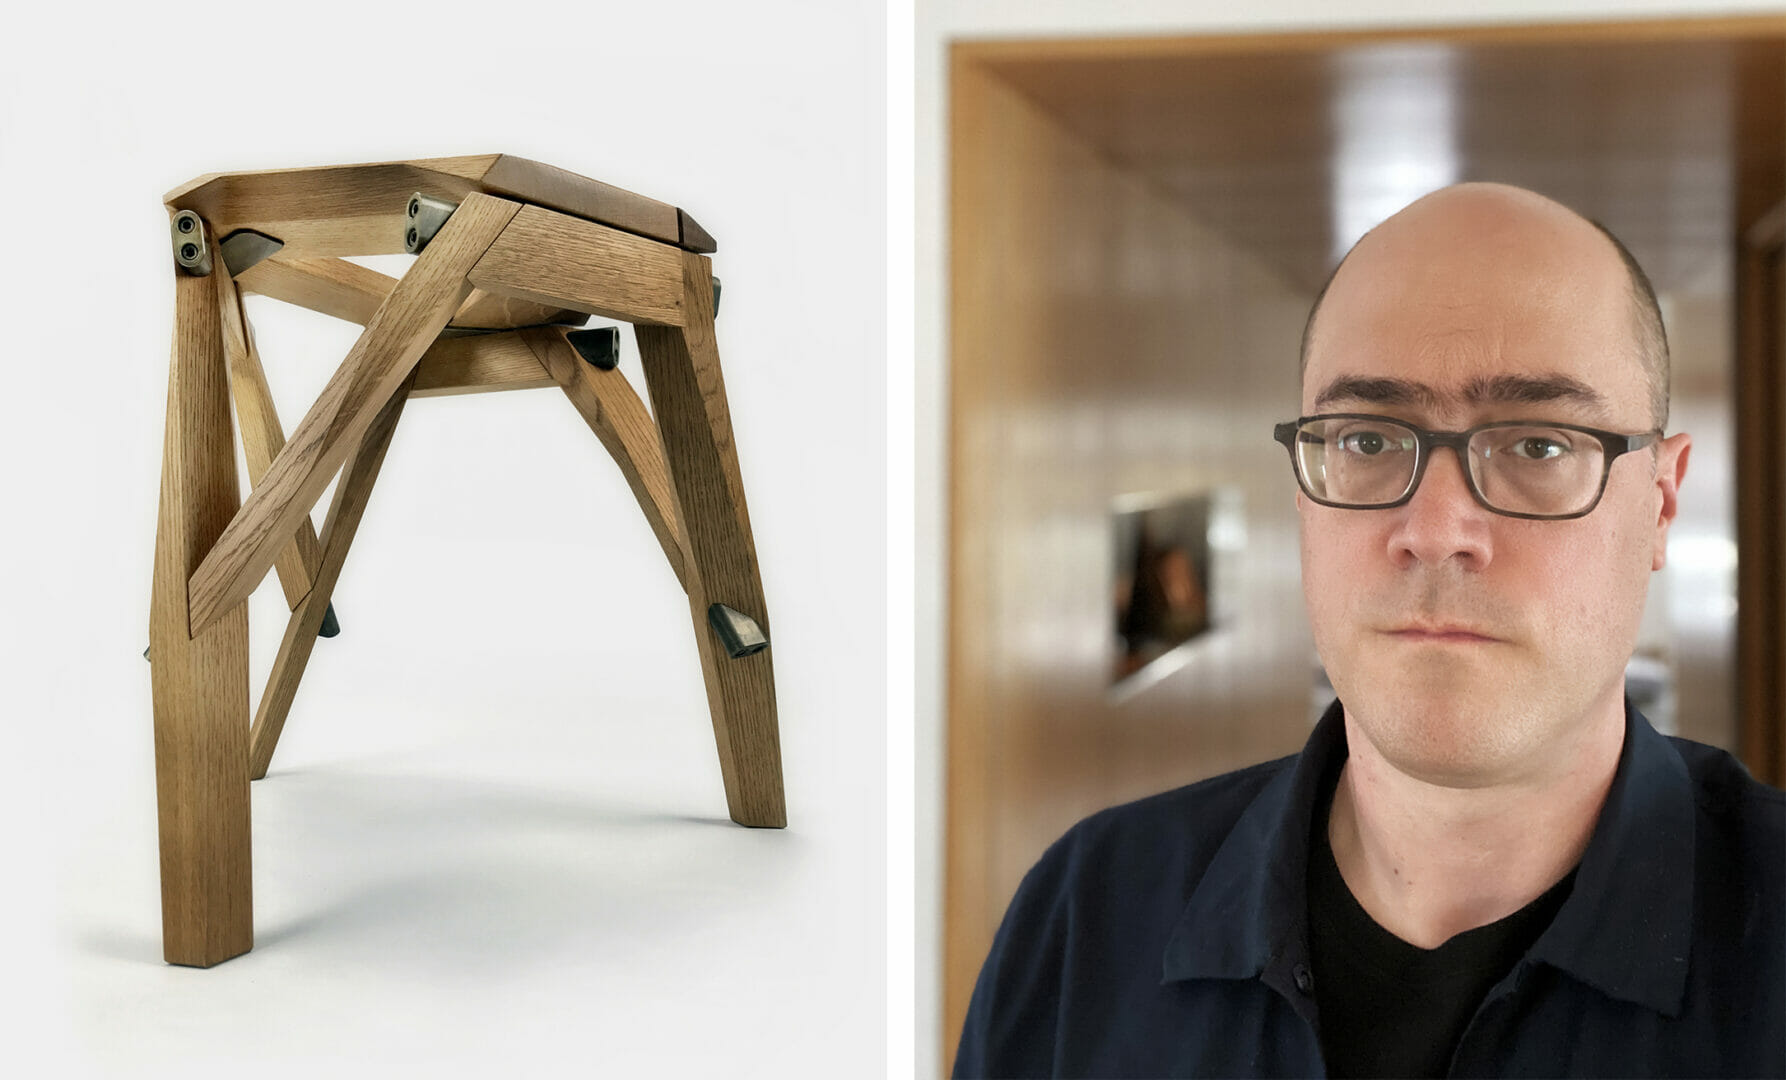 on left is a three-legged wood stool with metal hardware; on the right is a man in a black shirt with a shaved head and glasses